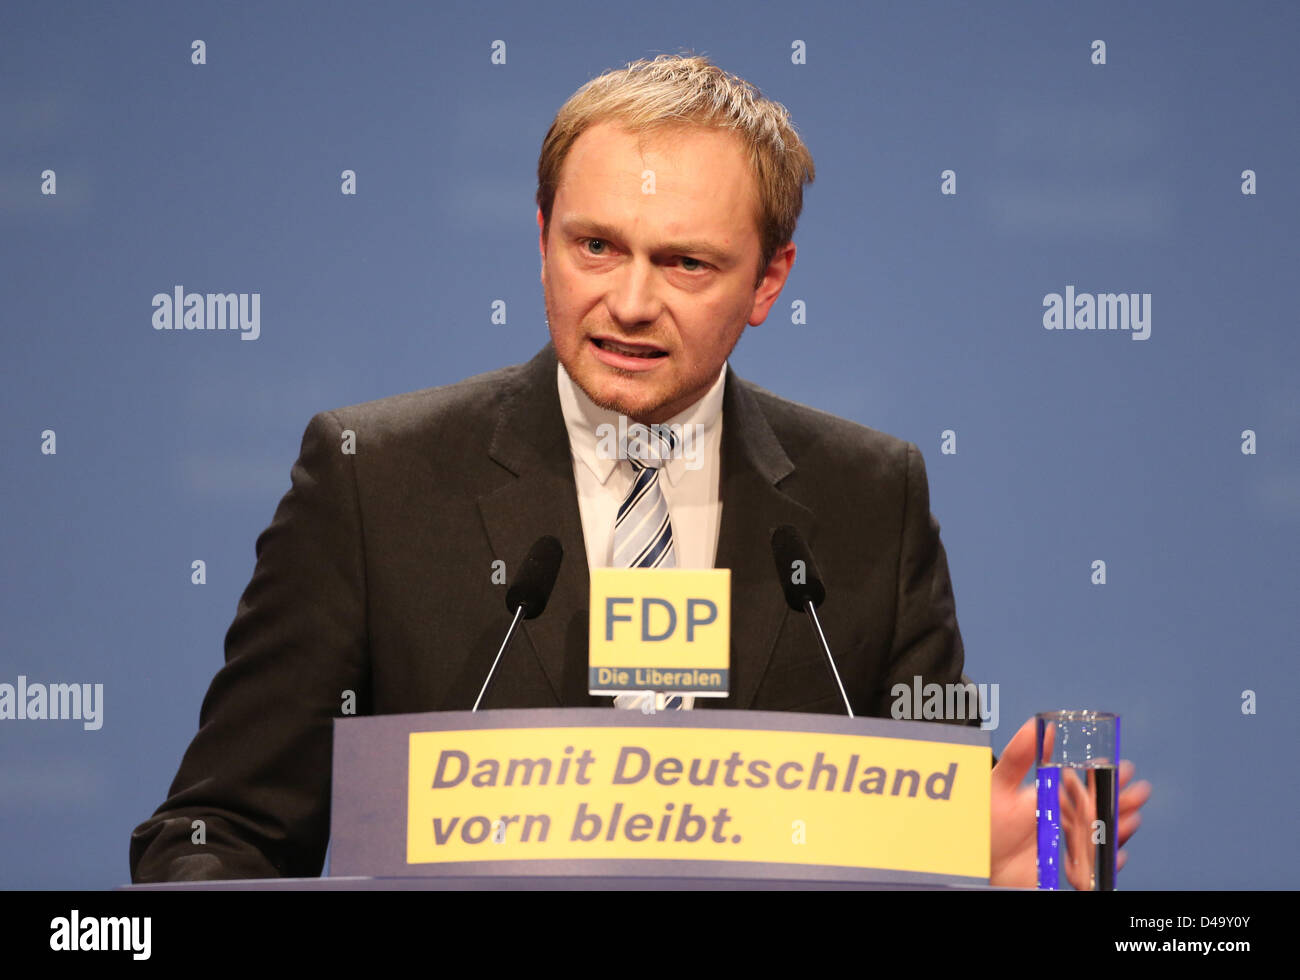 Berlin, Germany, 9th March, 2013The chairman of North Rhine-Westphalia's FDP, Christian Lindner, delivers a - Stock Image